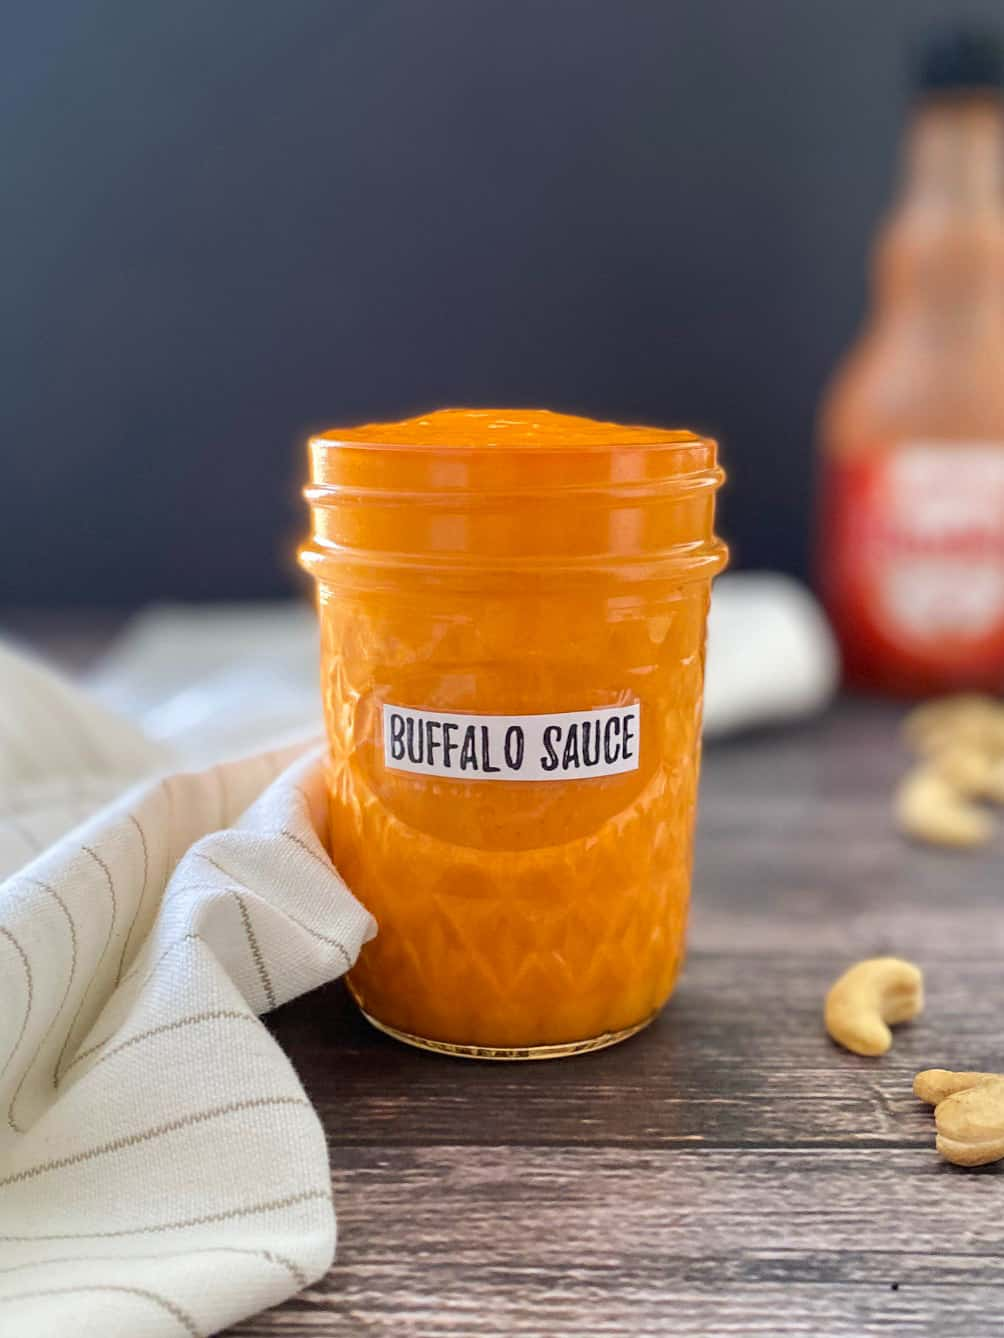 glass jar filled with orange hot sauce with bottle of Frank's RedHot in the background